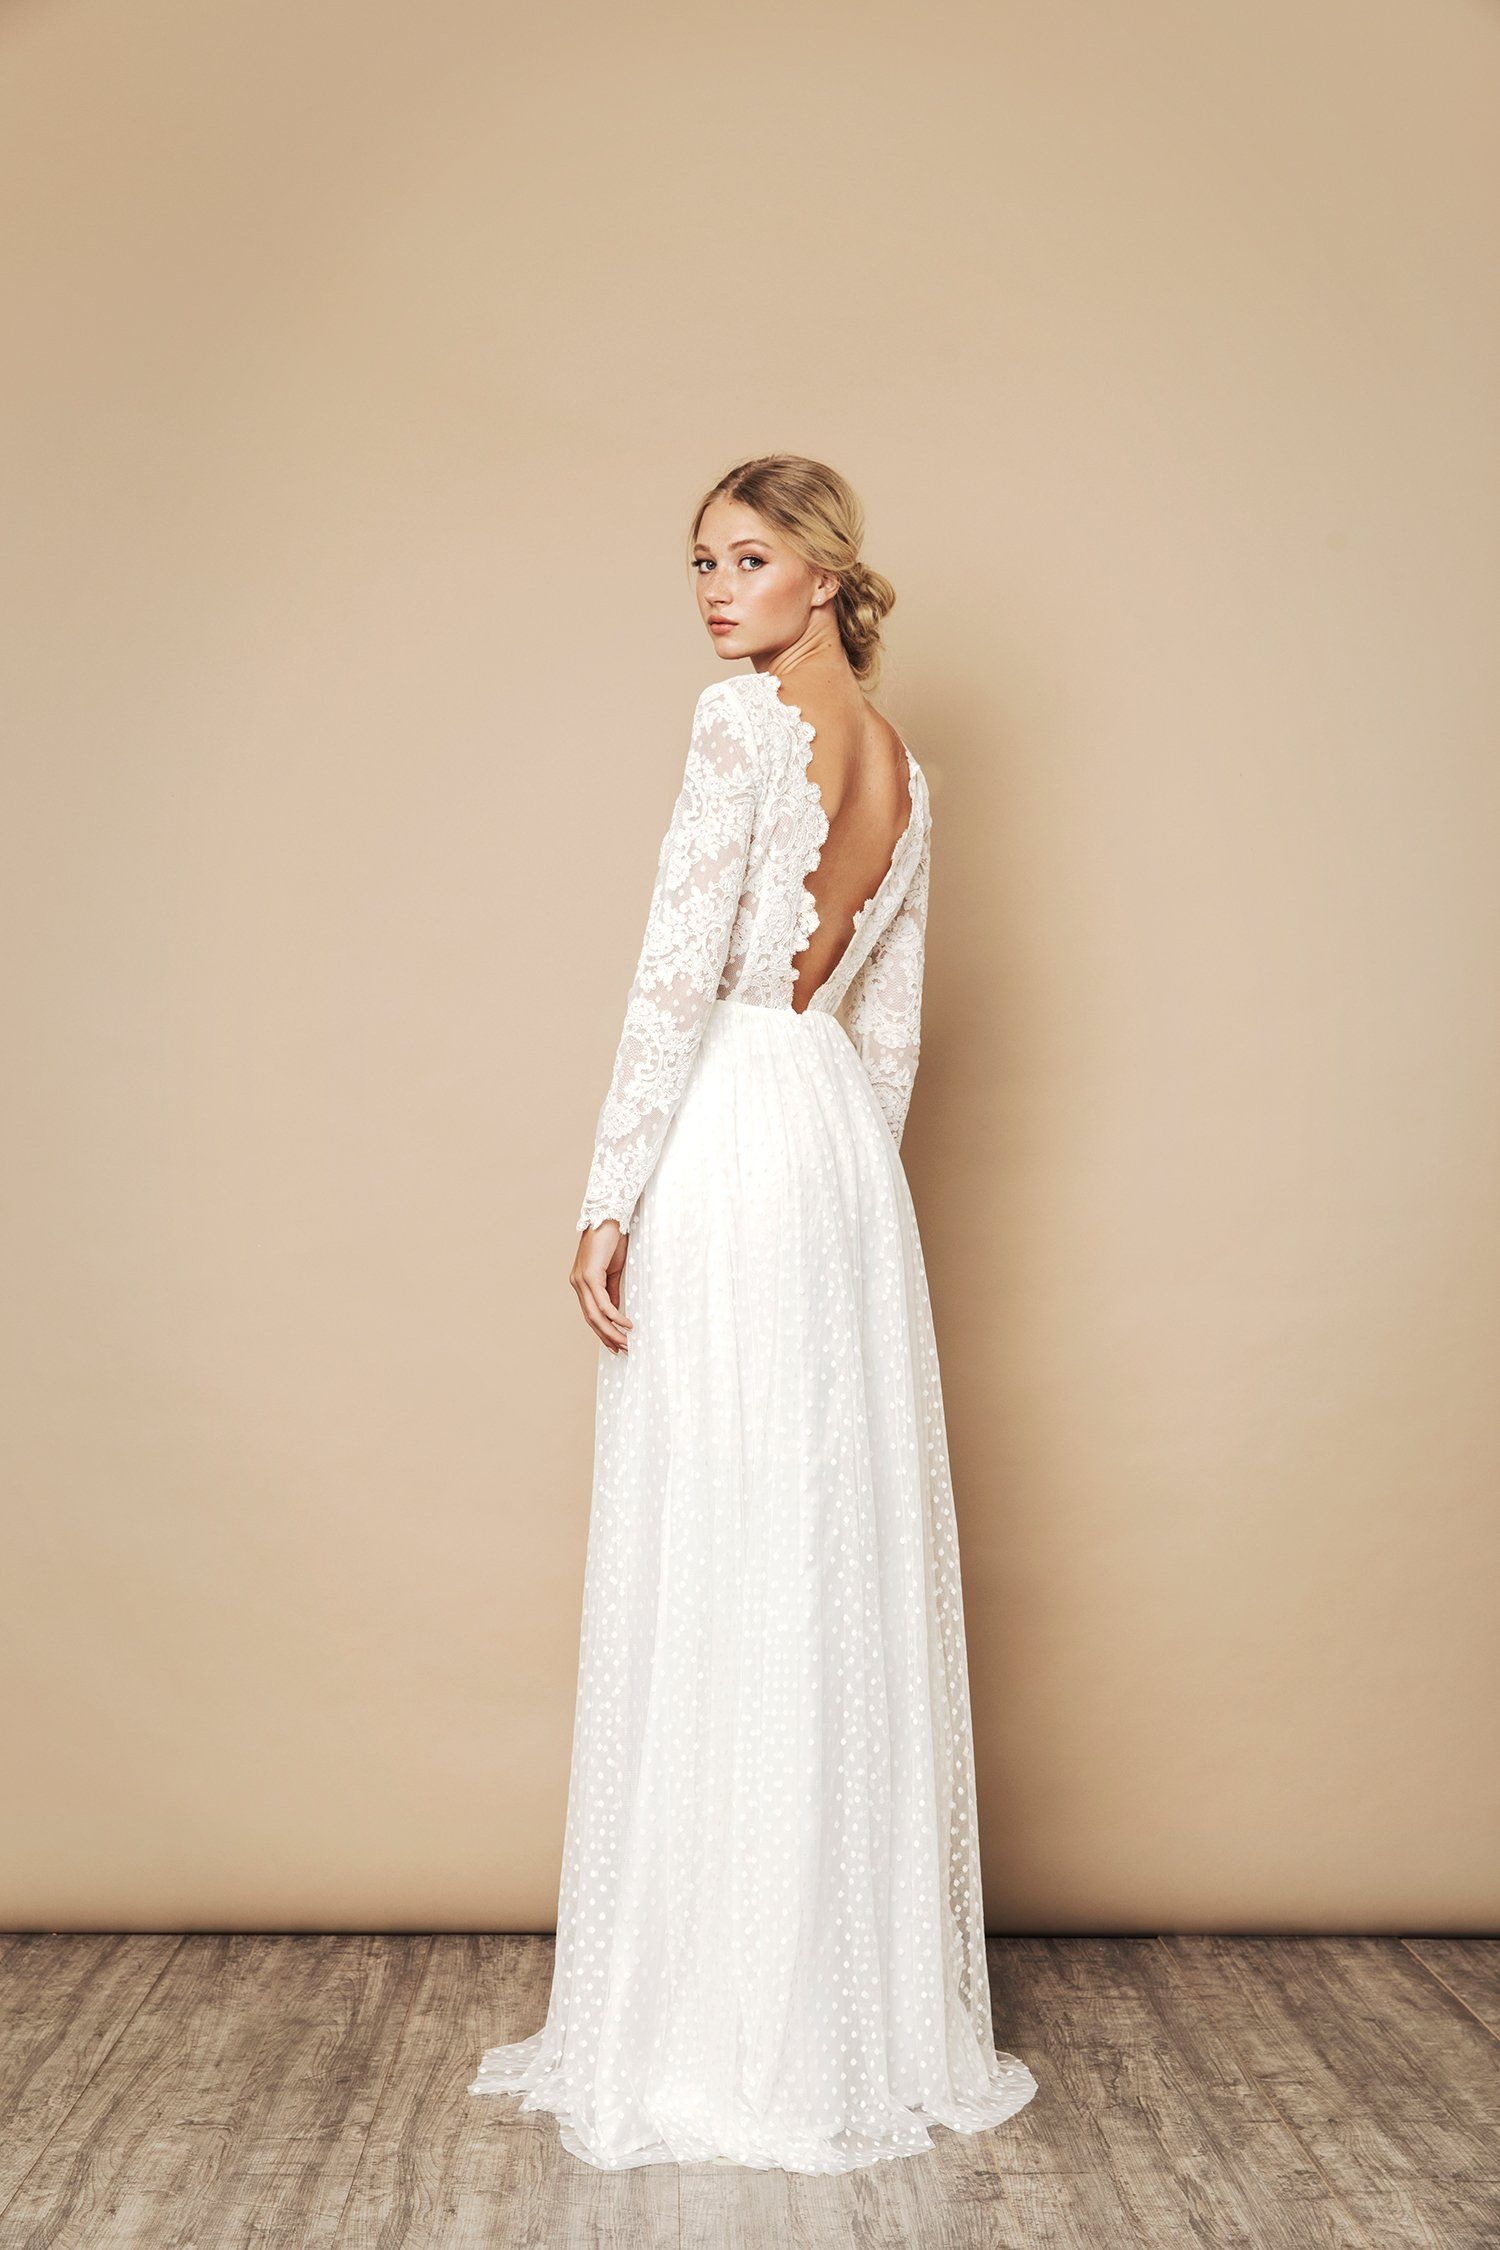 Hochzeitskleid Spitzenärmel Ida Sjostedt Coming Soon Beautiful Wedding Dresses